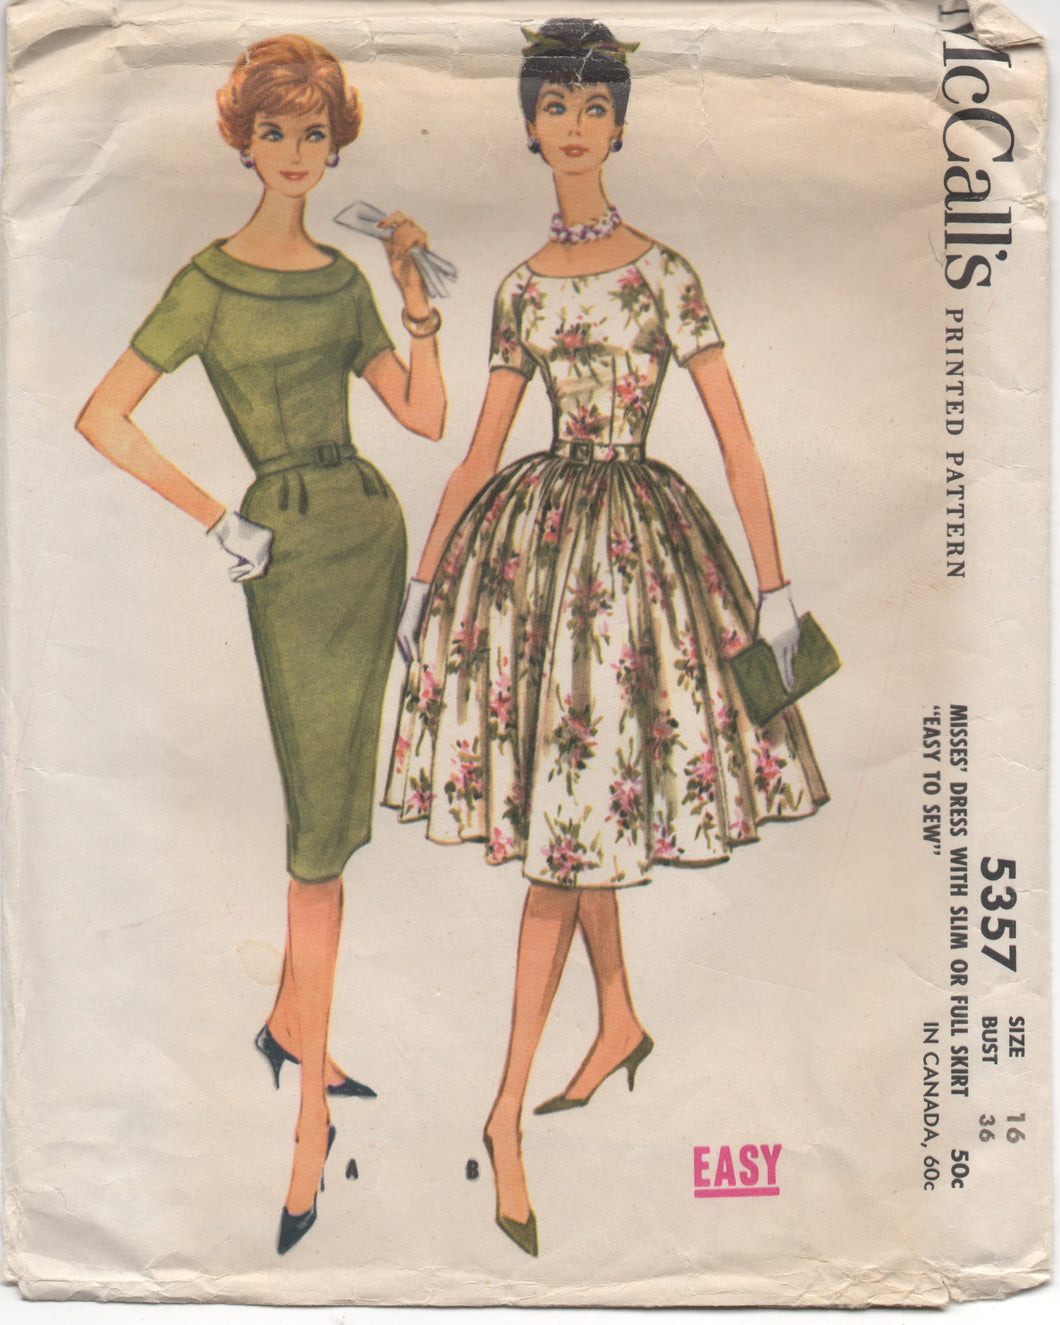 1960 McCall's One Piece Dress with or without Collar and Full or Slim Skirt- Bust 36